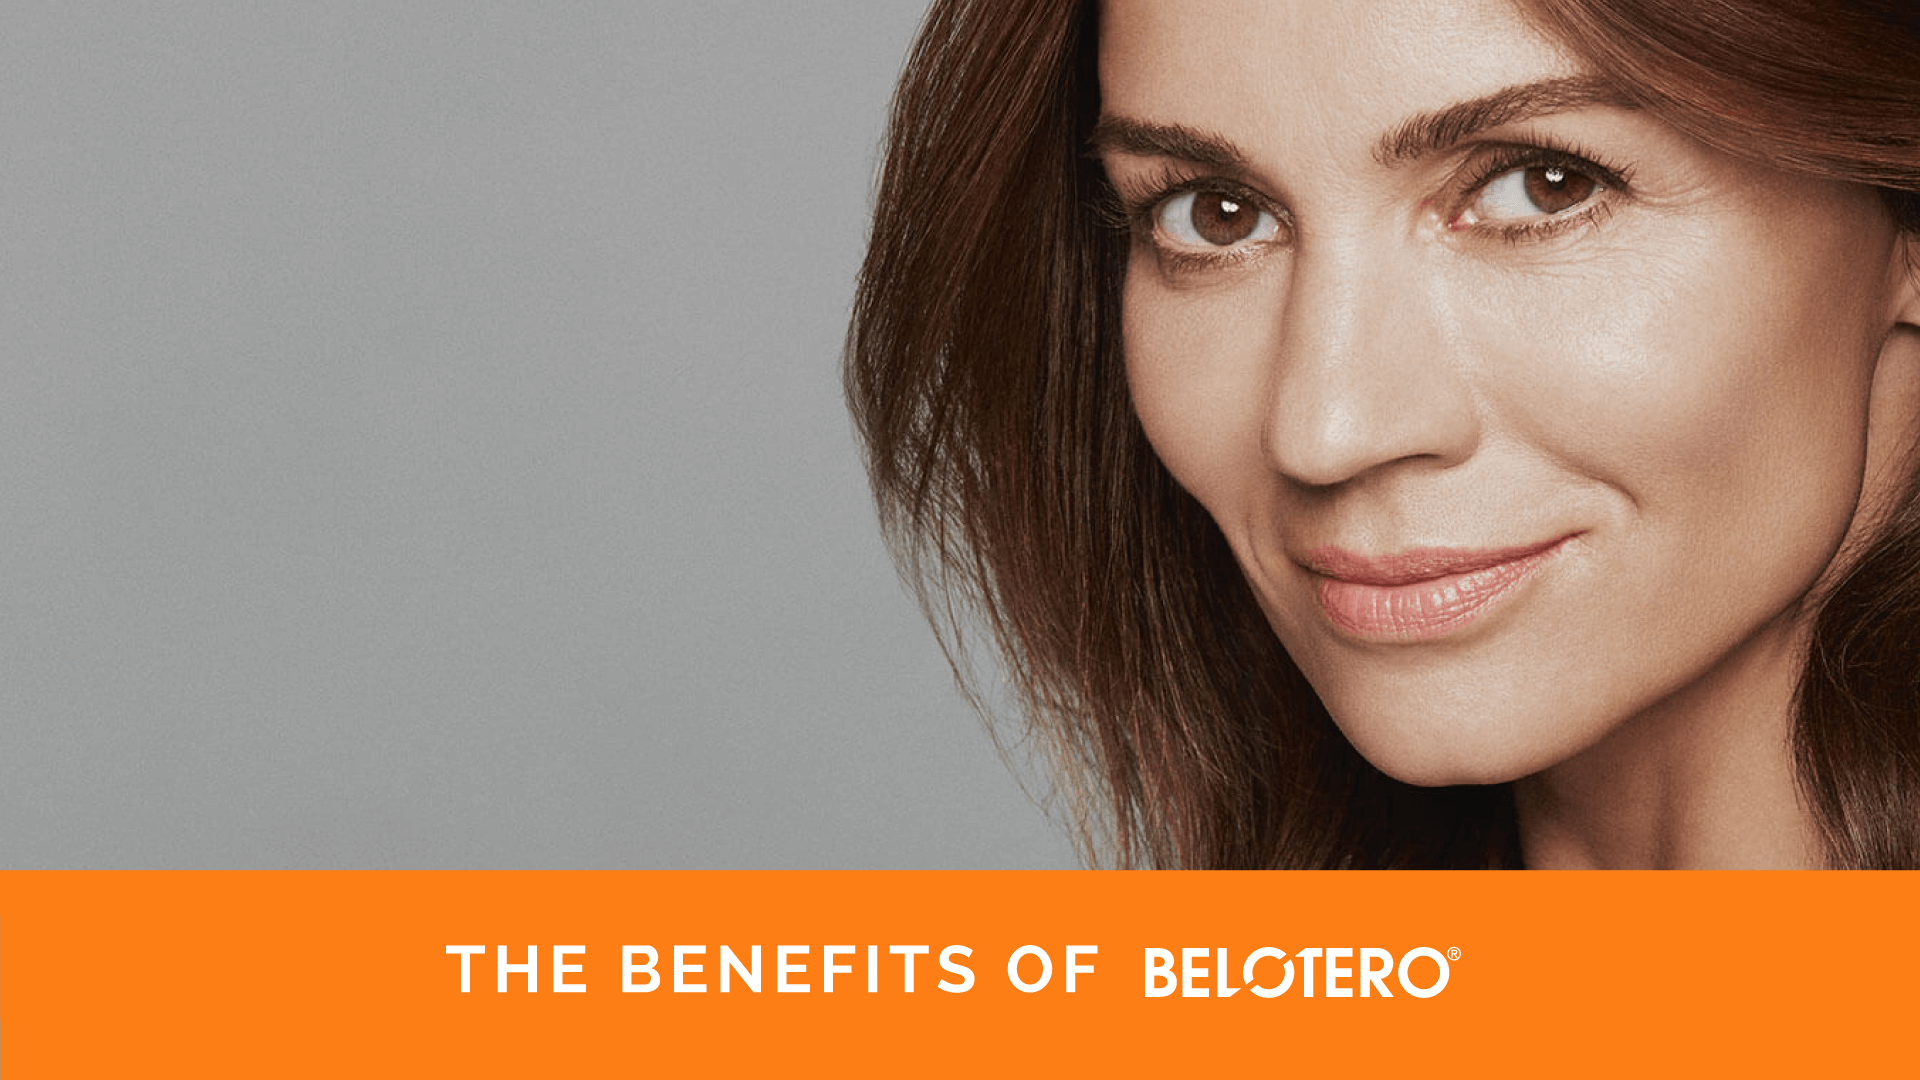 The benefits of Belotero